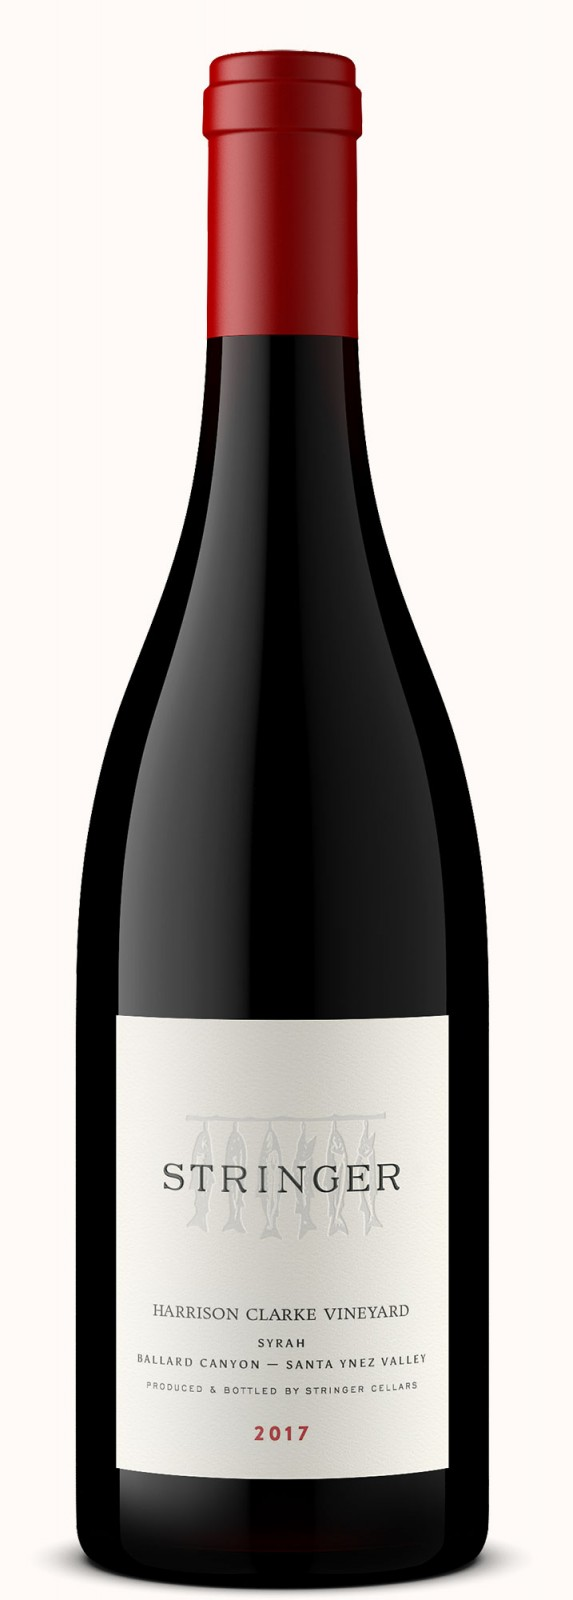 Harrison Clarke Vineyard Syrah 2017 Ballard Canyon—CA - Stringer Cellars